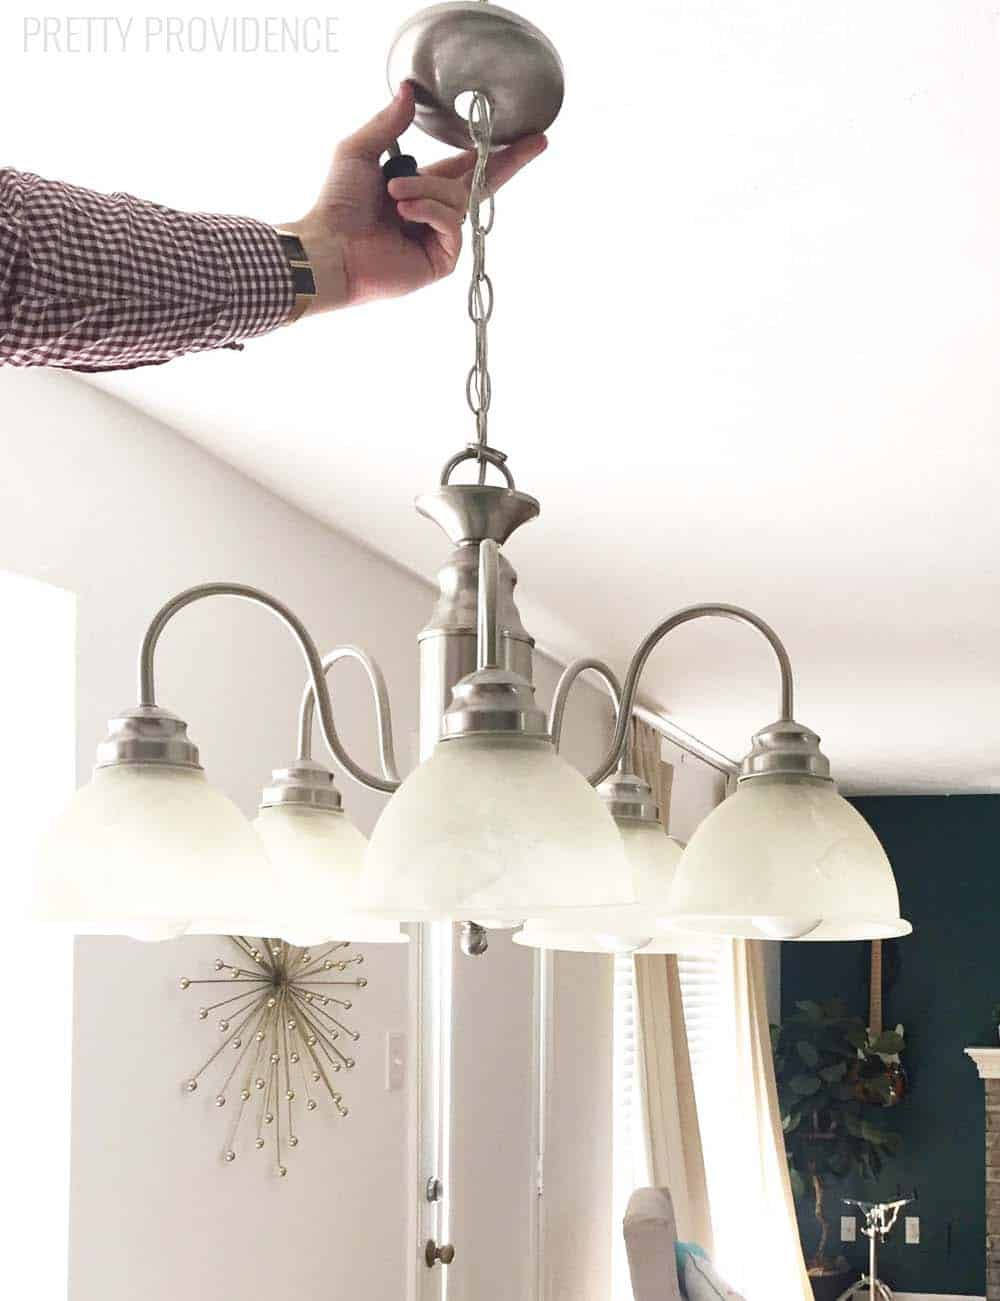 Drum shade pendant light - so EASY and inexpensive!